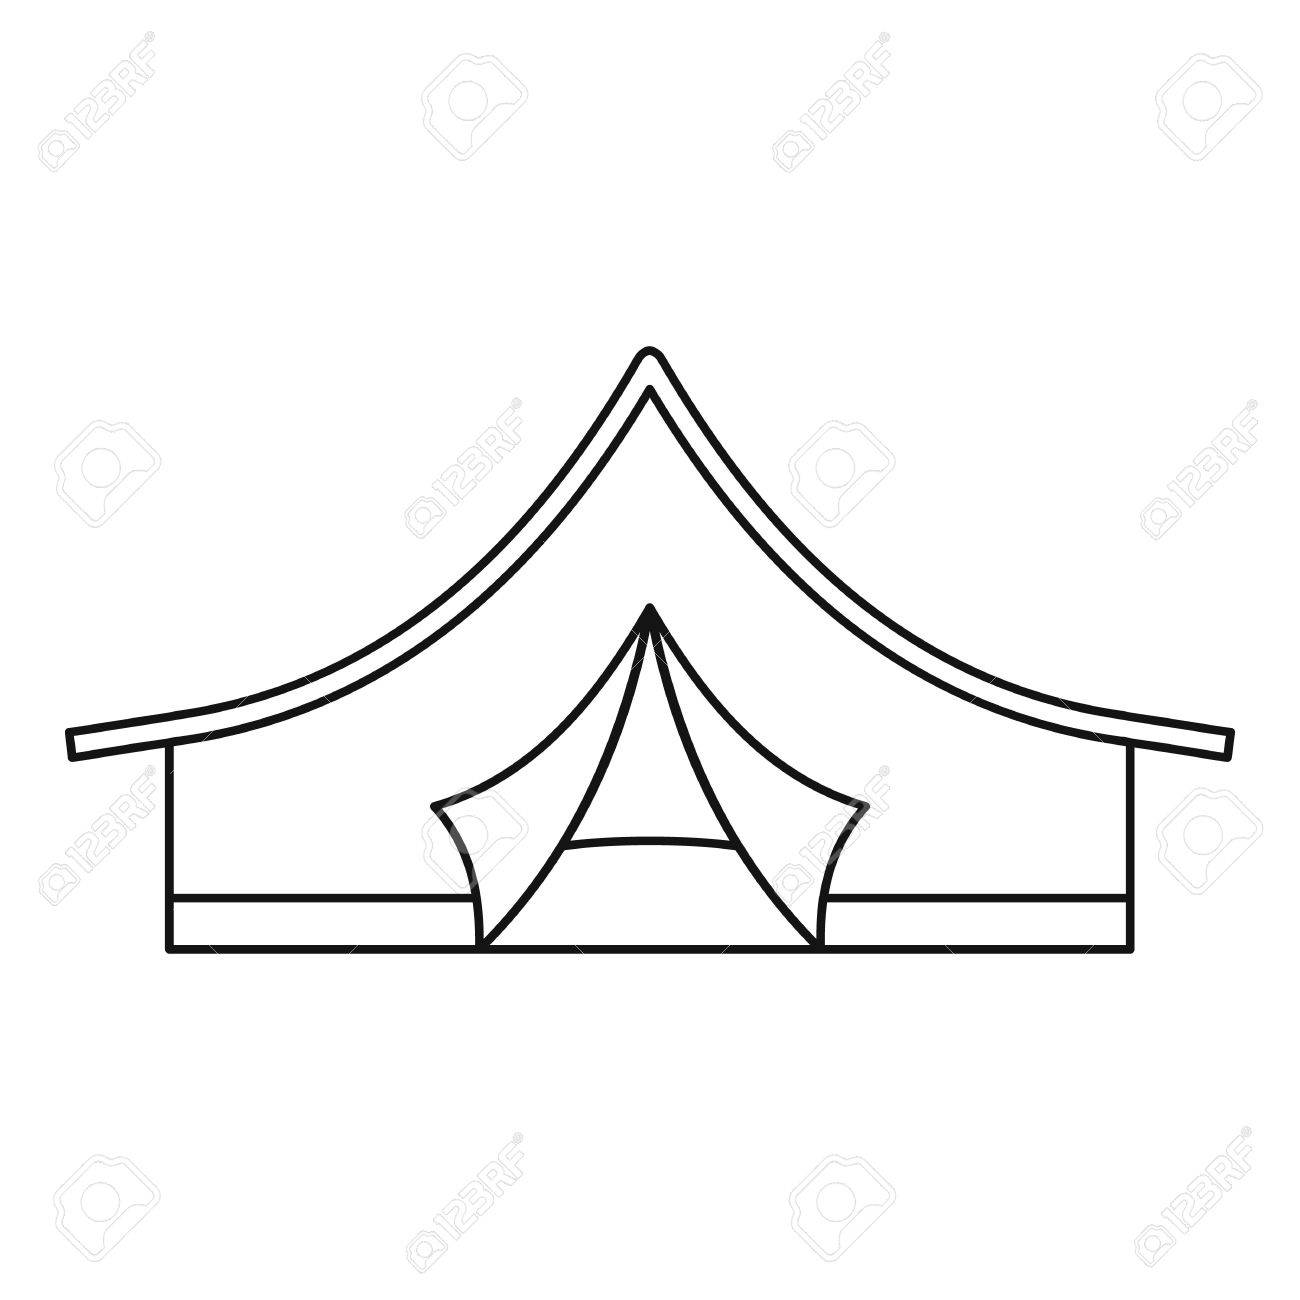 Tent Outline Cliparts Free Download Clip Art.